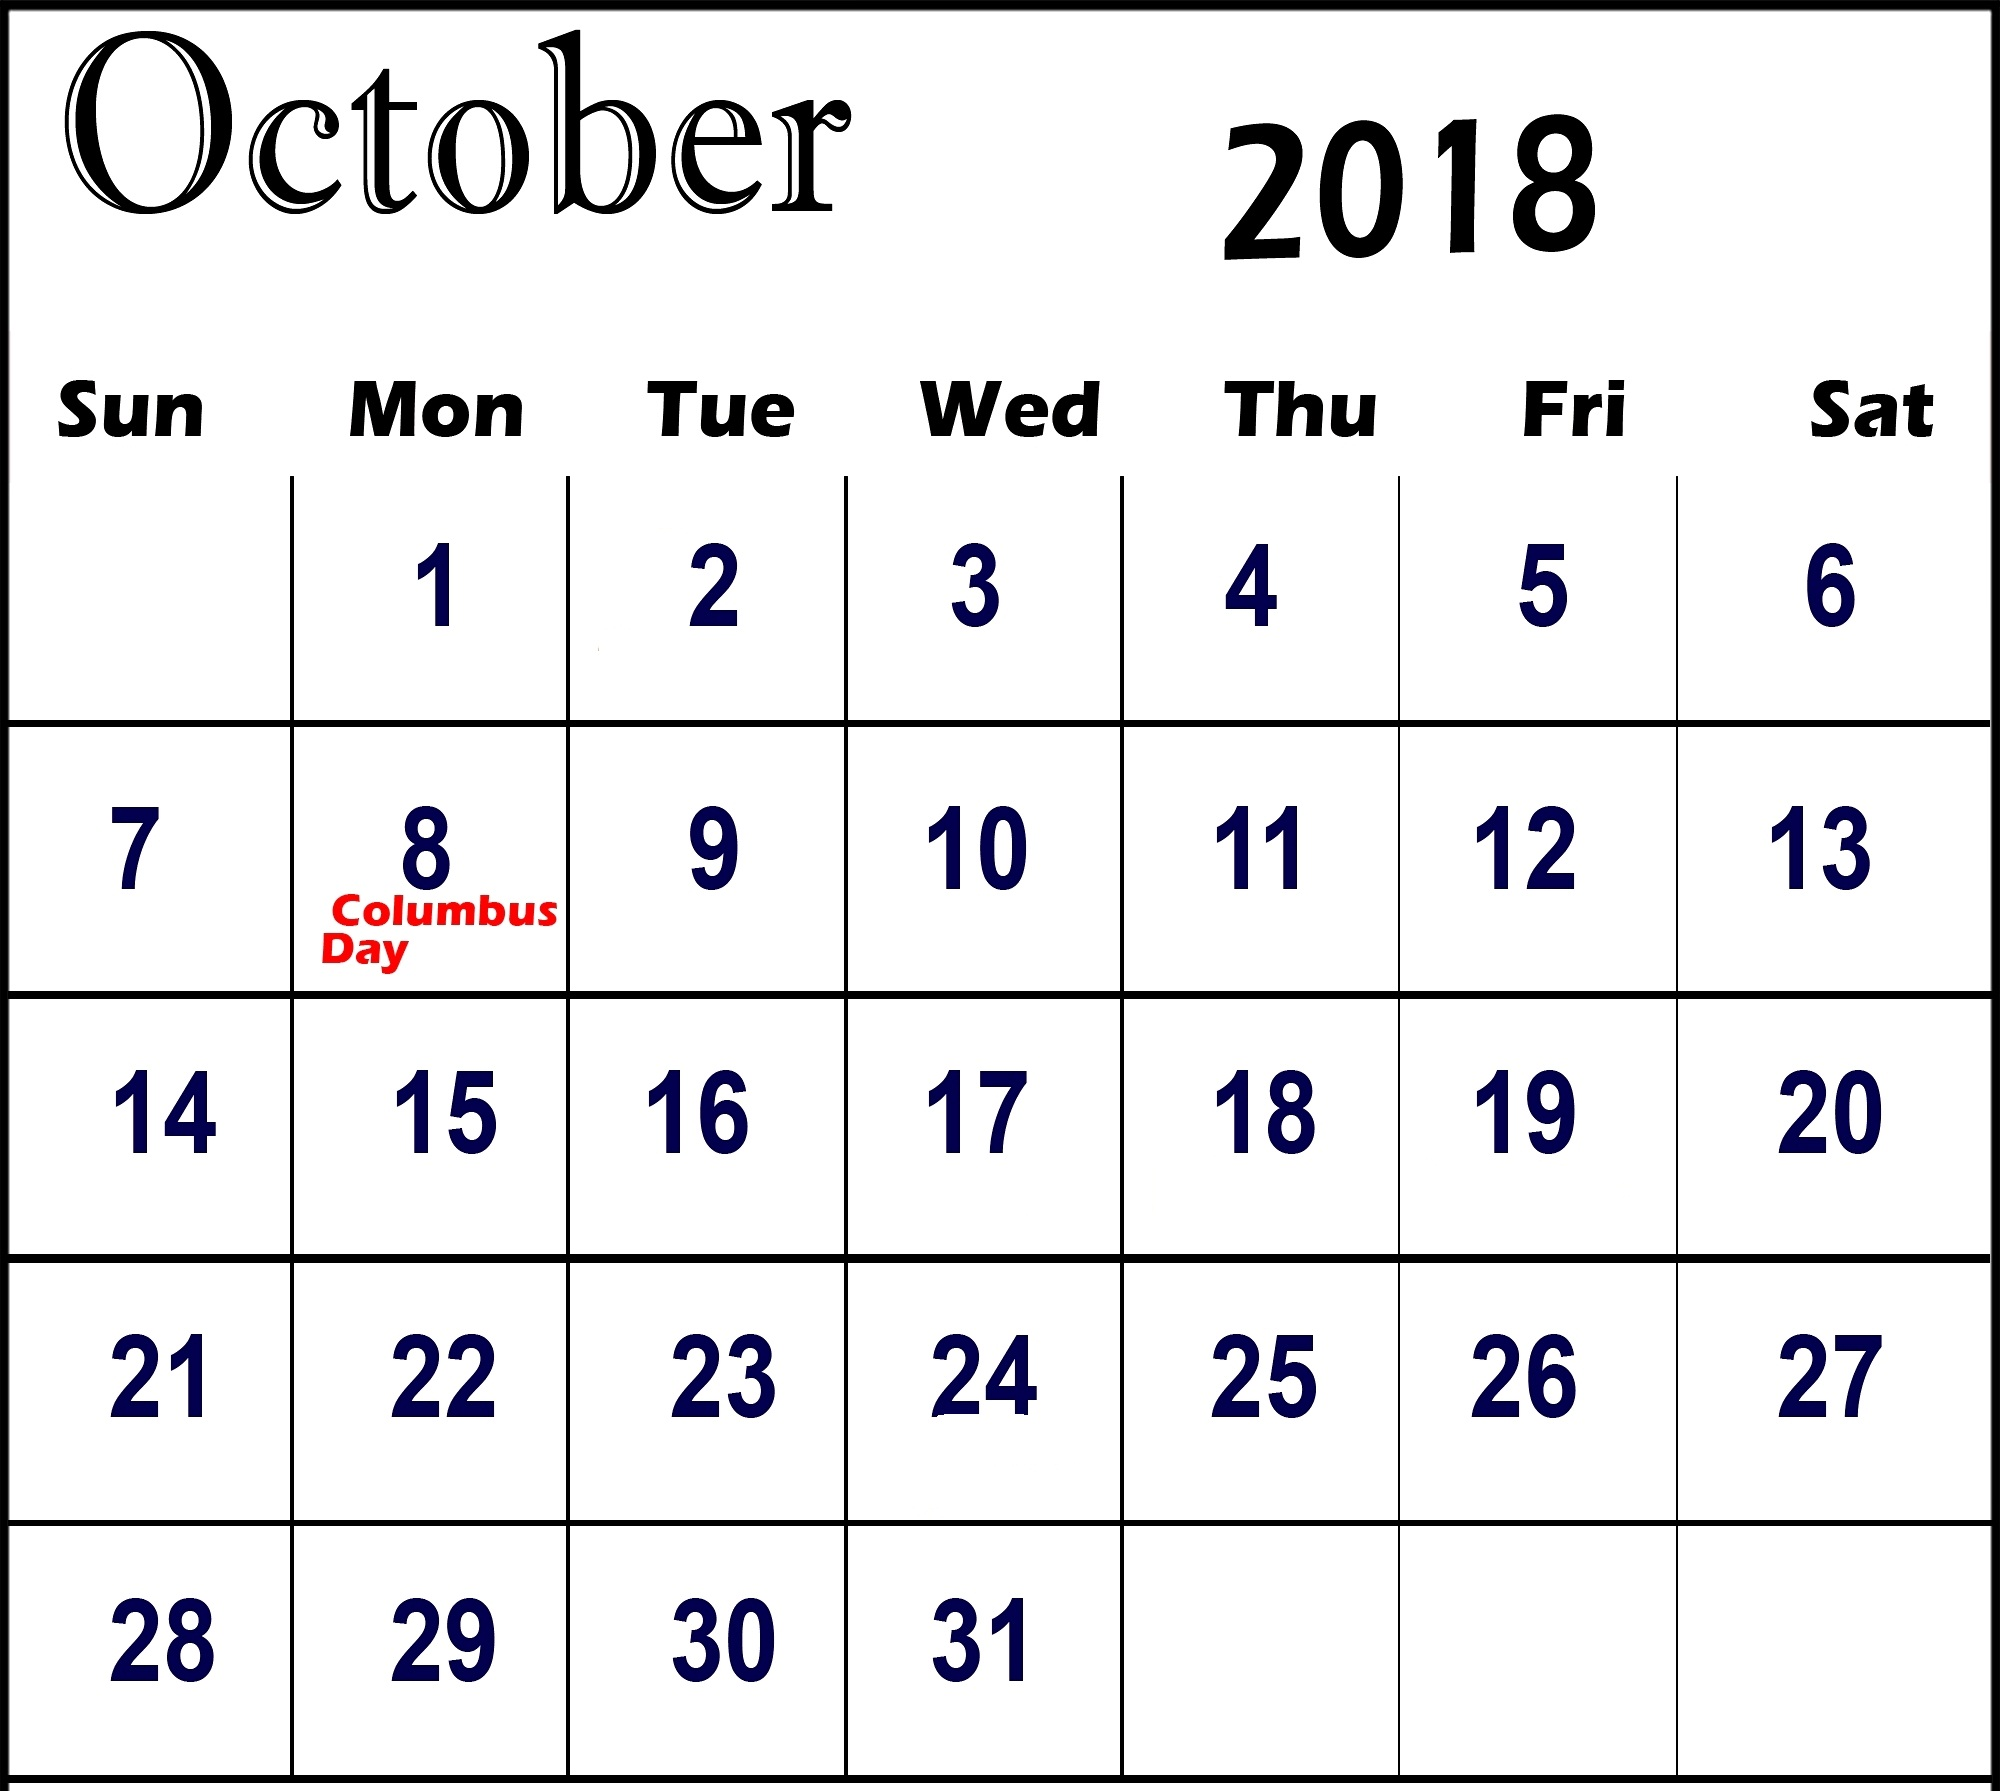 October 2018 Calendar With USA School Holidays Printable